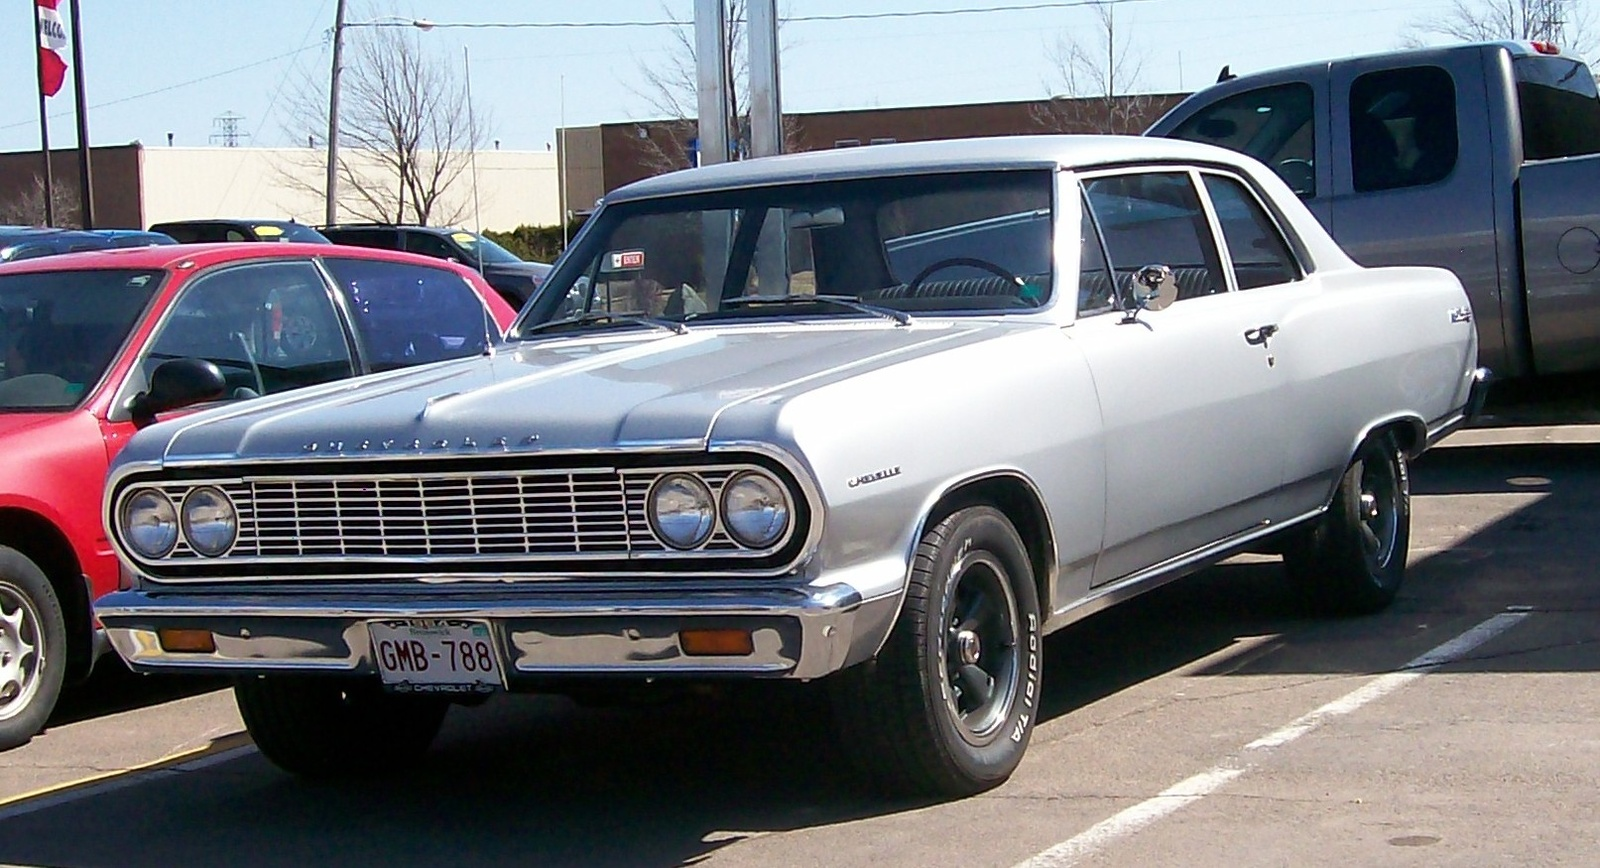 1968 1972 chevelle station wagon submited images